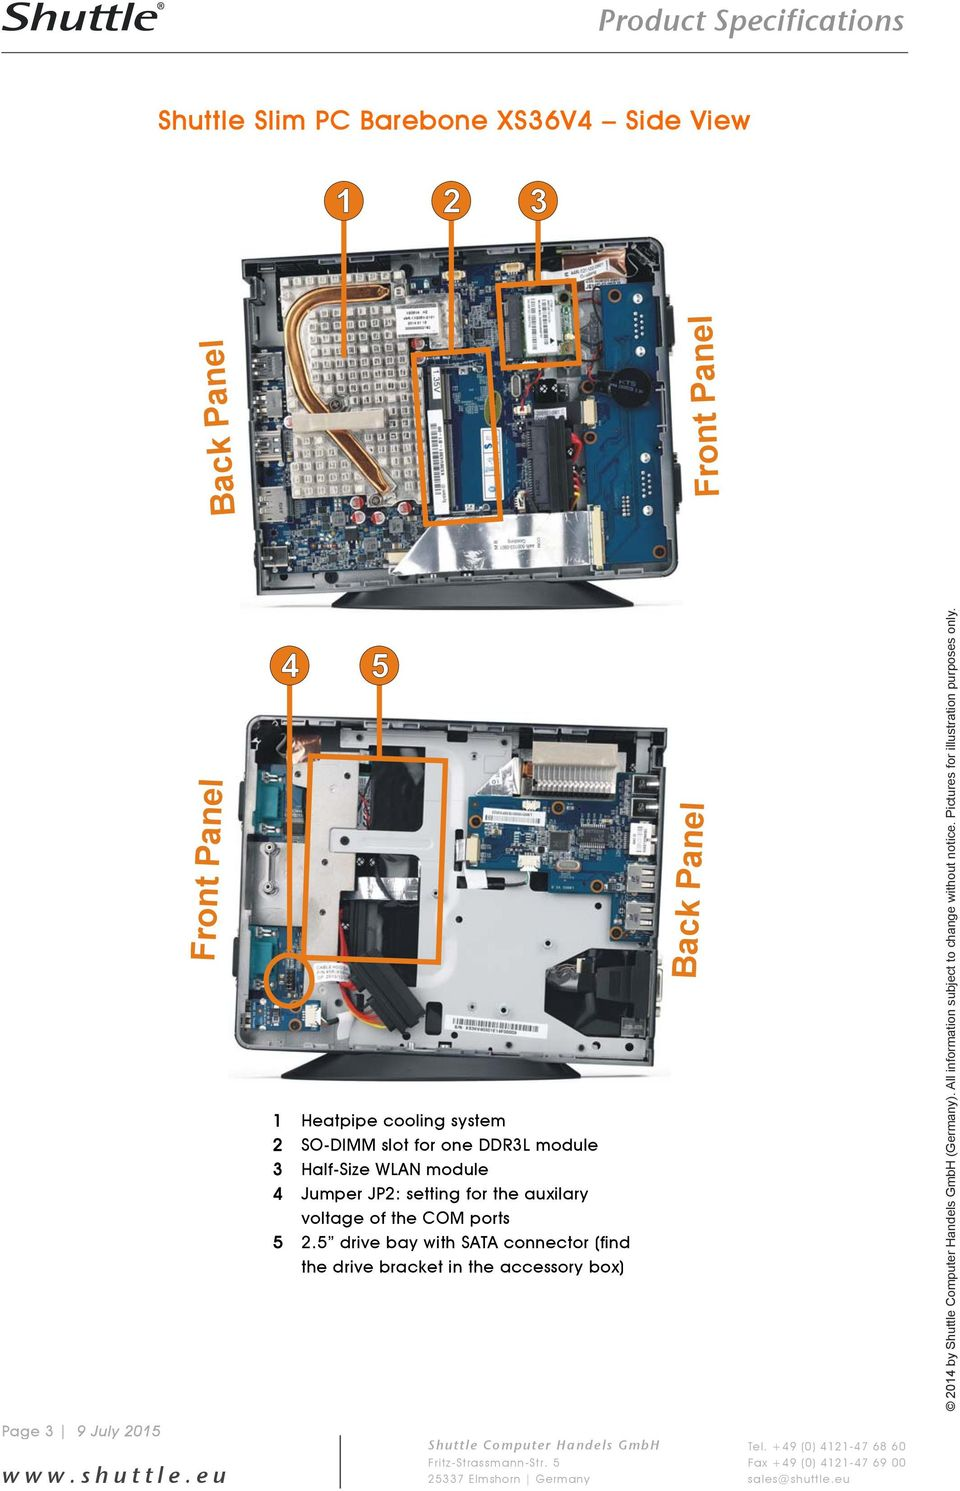 5 drive bay with SATA connector (find the drive bracket in the accessory box) Back PanelFront Panel 2014 by